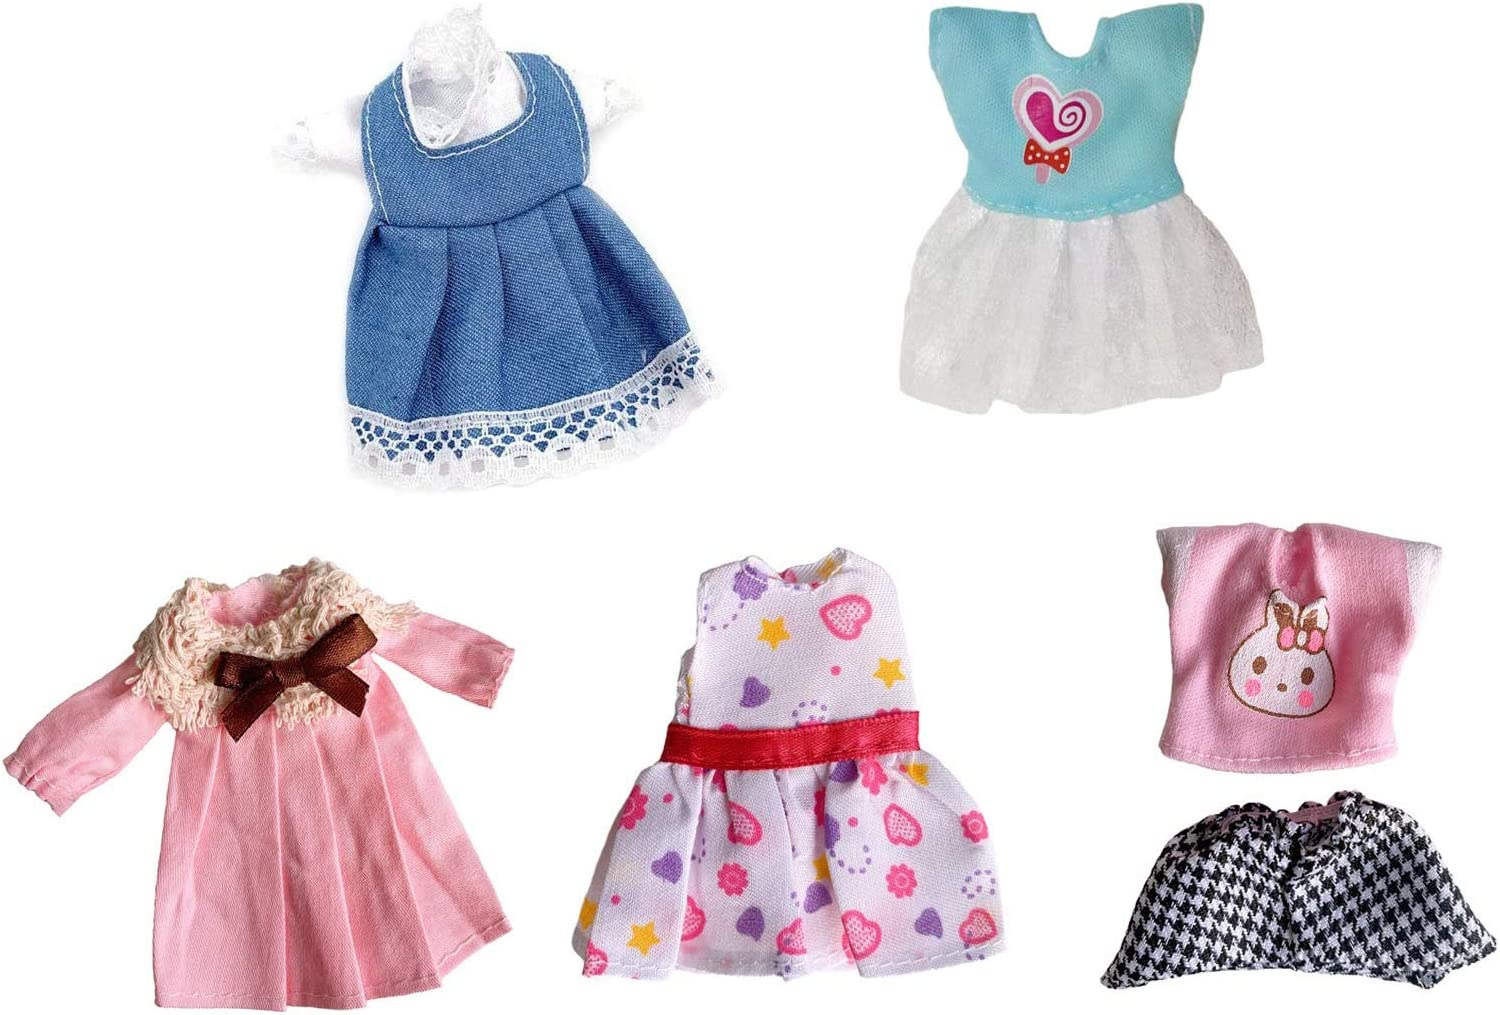 5 Pcs Set Lovely Mini Doll Casual Time sale overseas fo Outfits Clothes Dress Party